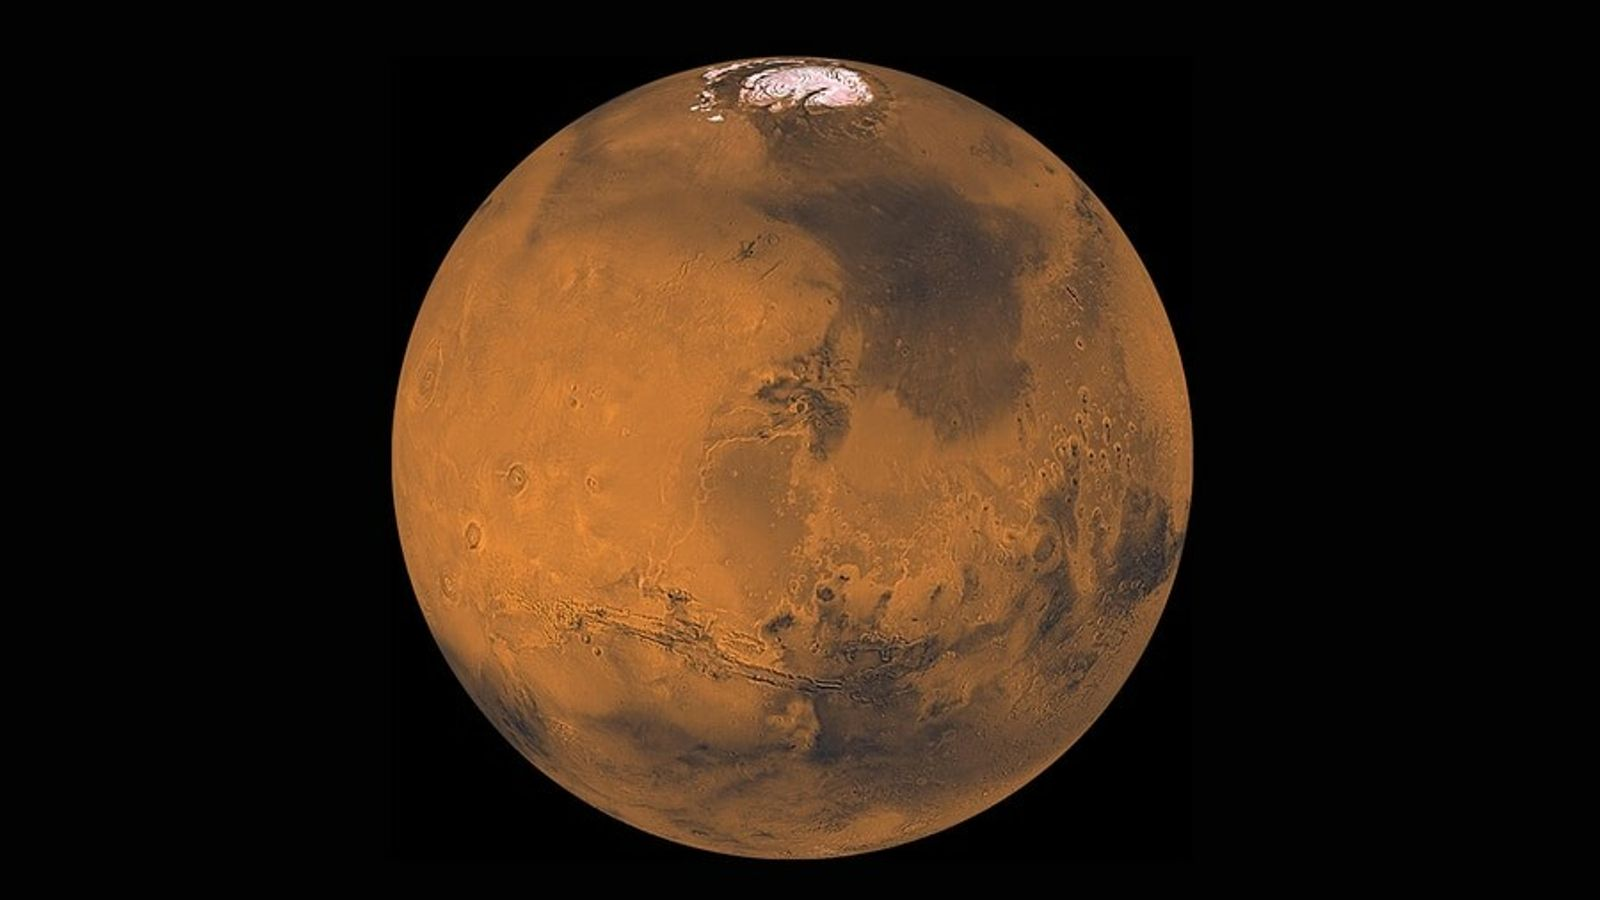 Families will have plenty of opportunities to view the red planet—shown here in an image put ...